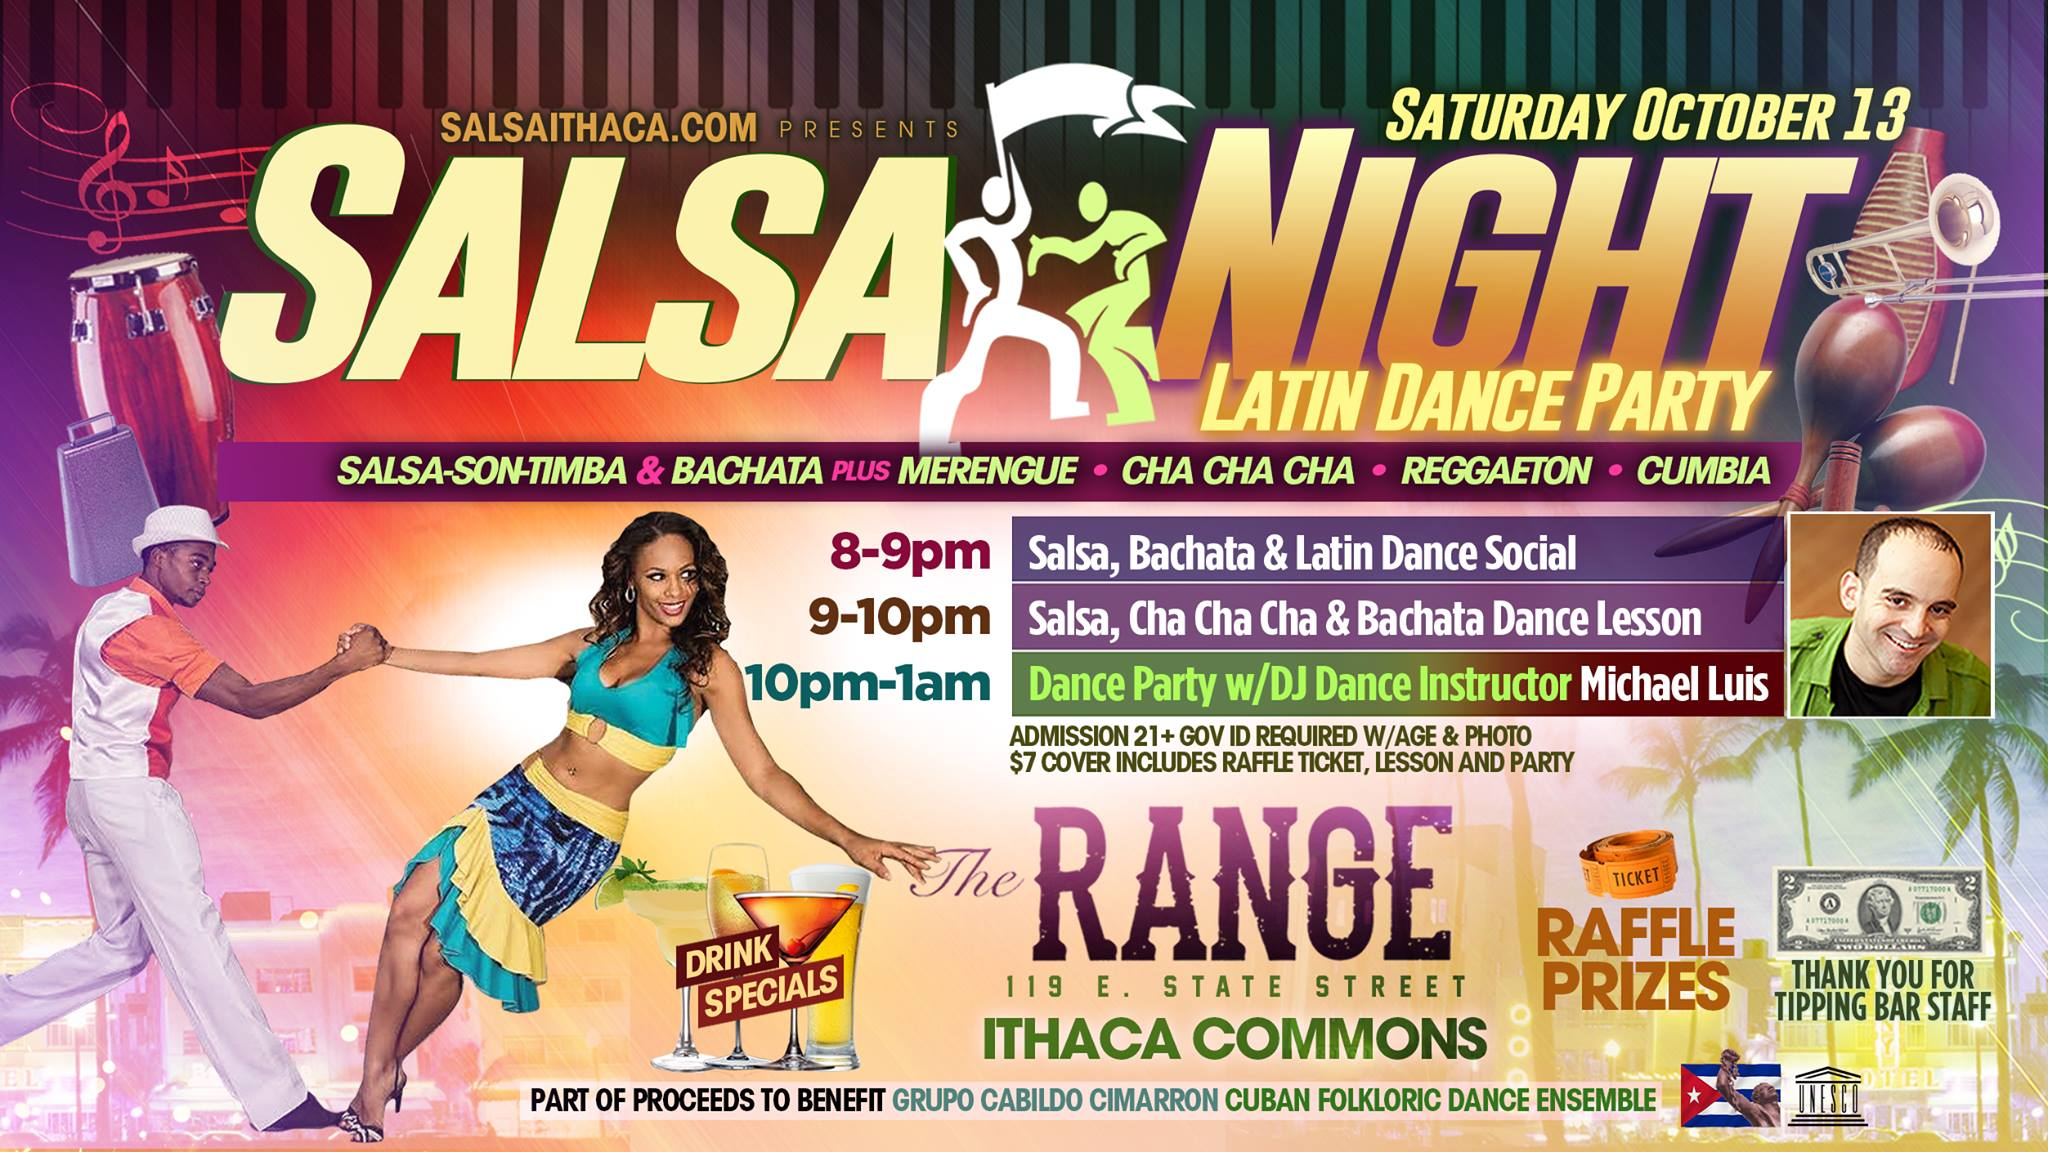 Salsa Night at The Range